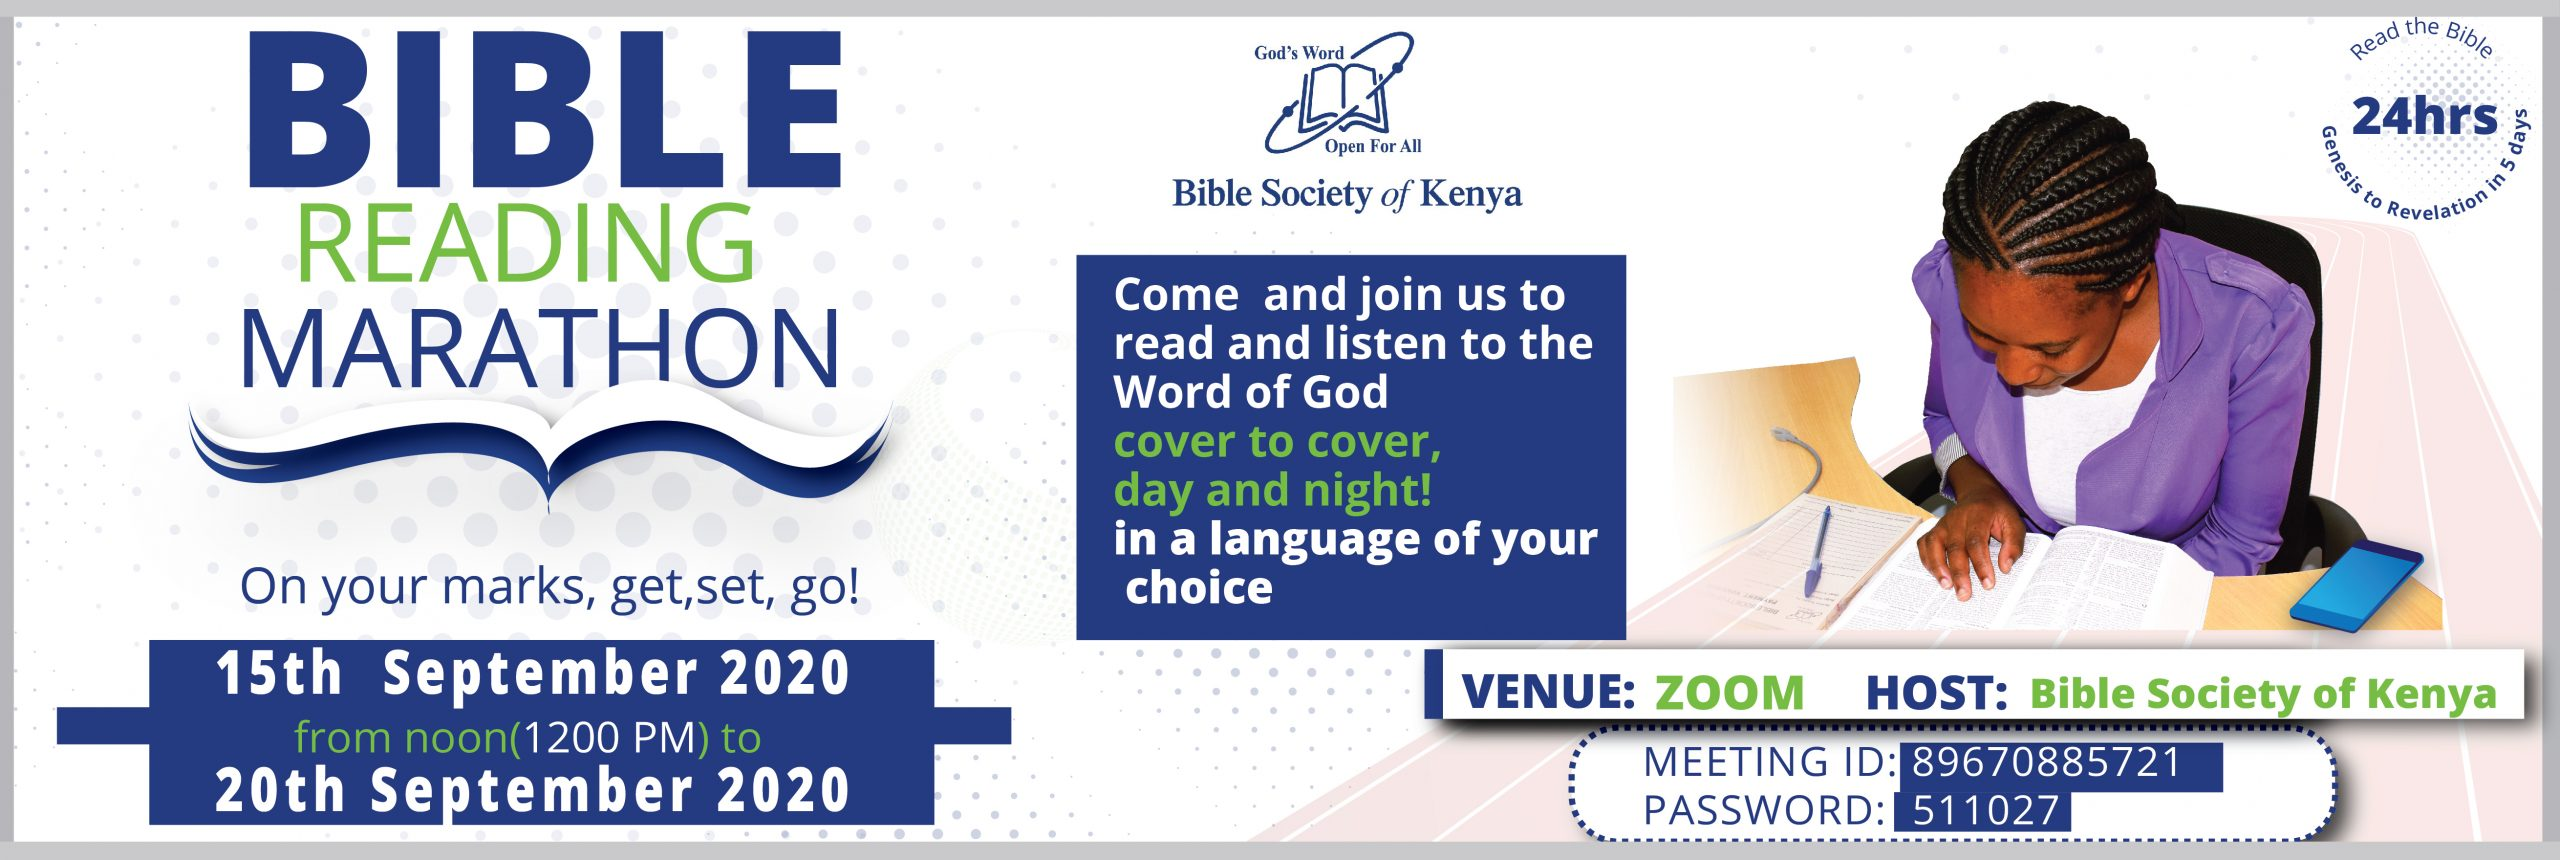 Bible Society of Kenya Bible reading Marathon-01